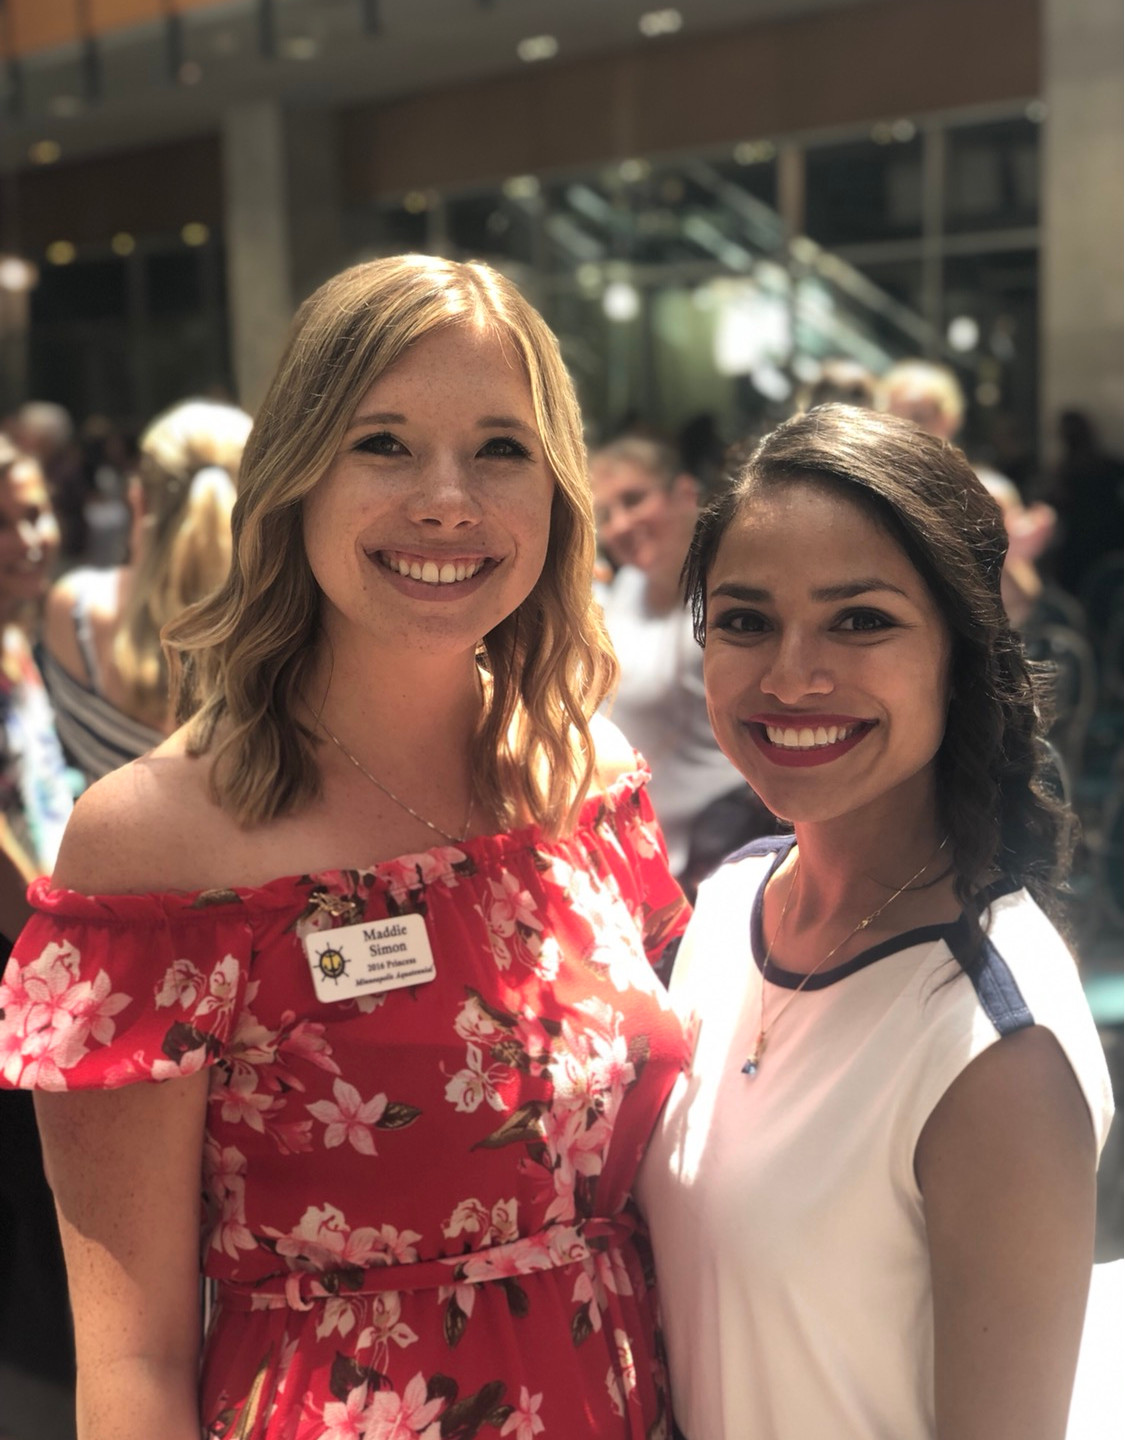 Maddie Simon and Maricia Pacheco, recipients of the Steven K. Anderson Volunteer of the Year Award